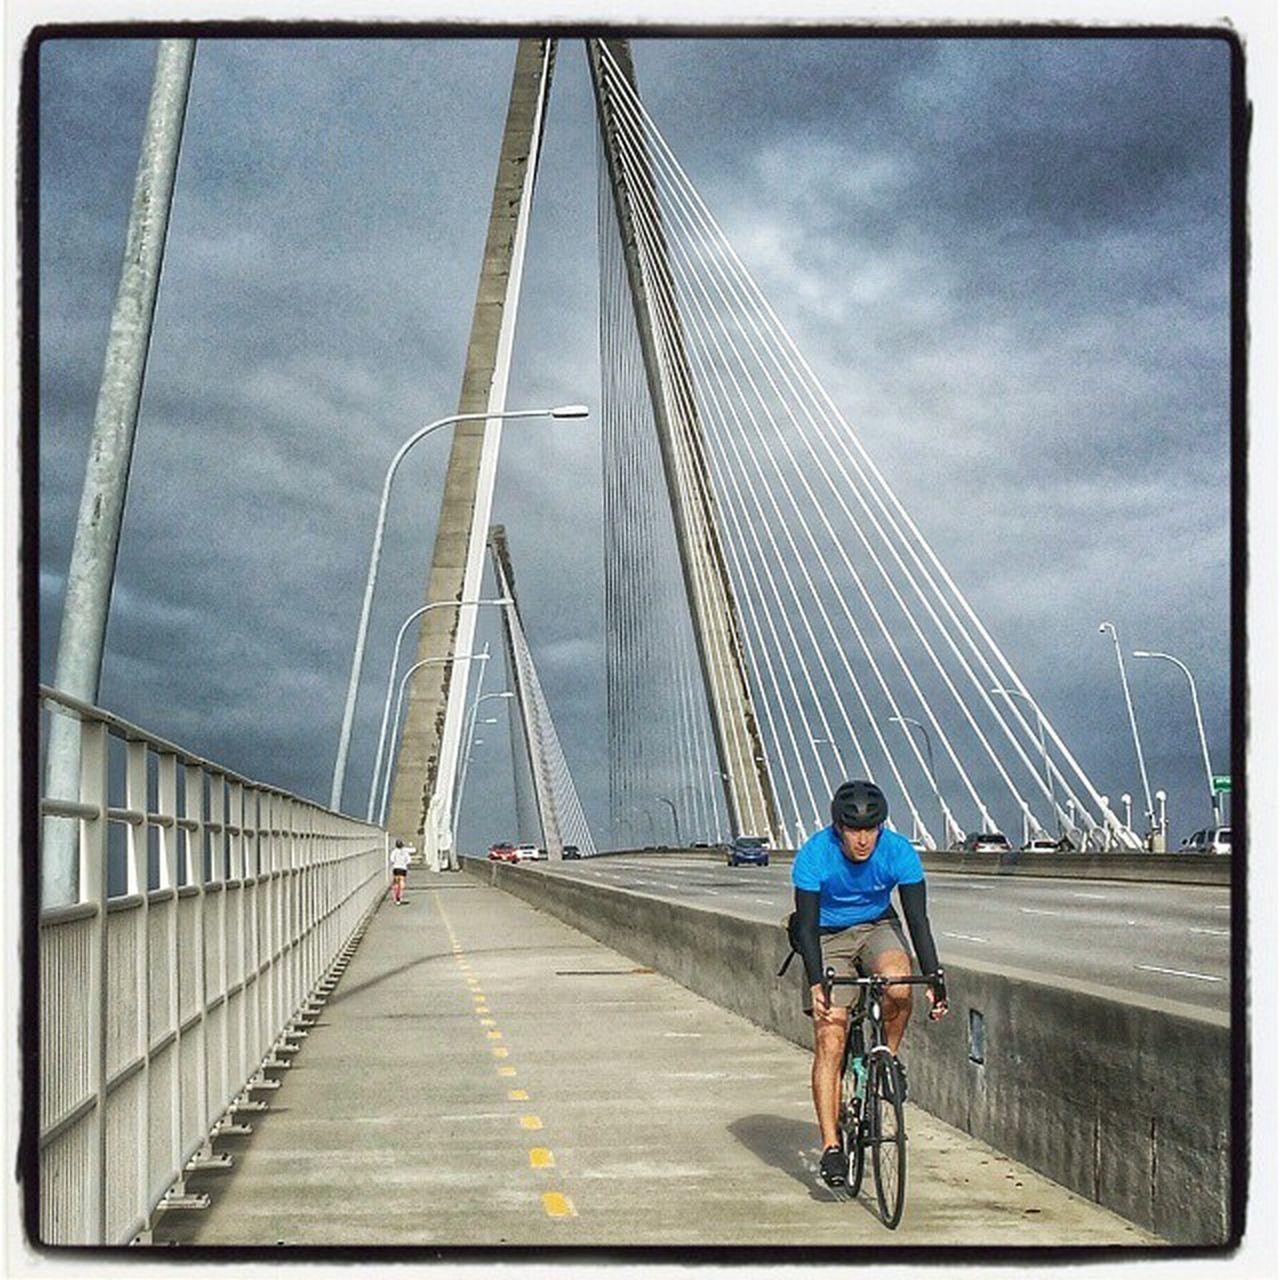 Random shot... Cycling Cooperriverbridge Bike Biking Fitness Charleston Charlestonsc Southcarolina Cyclingpics  Cyclinglife Trek Strava Giant